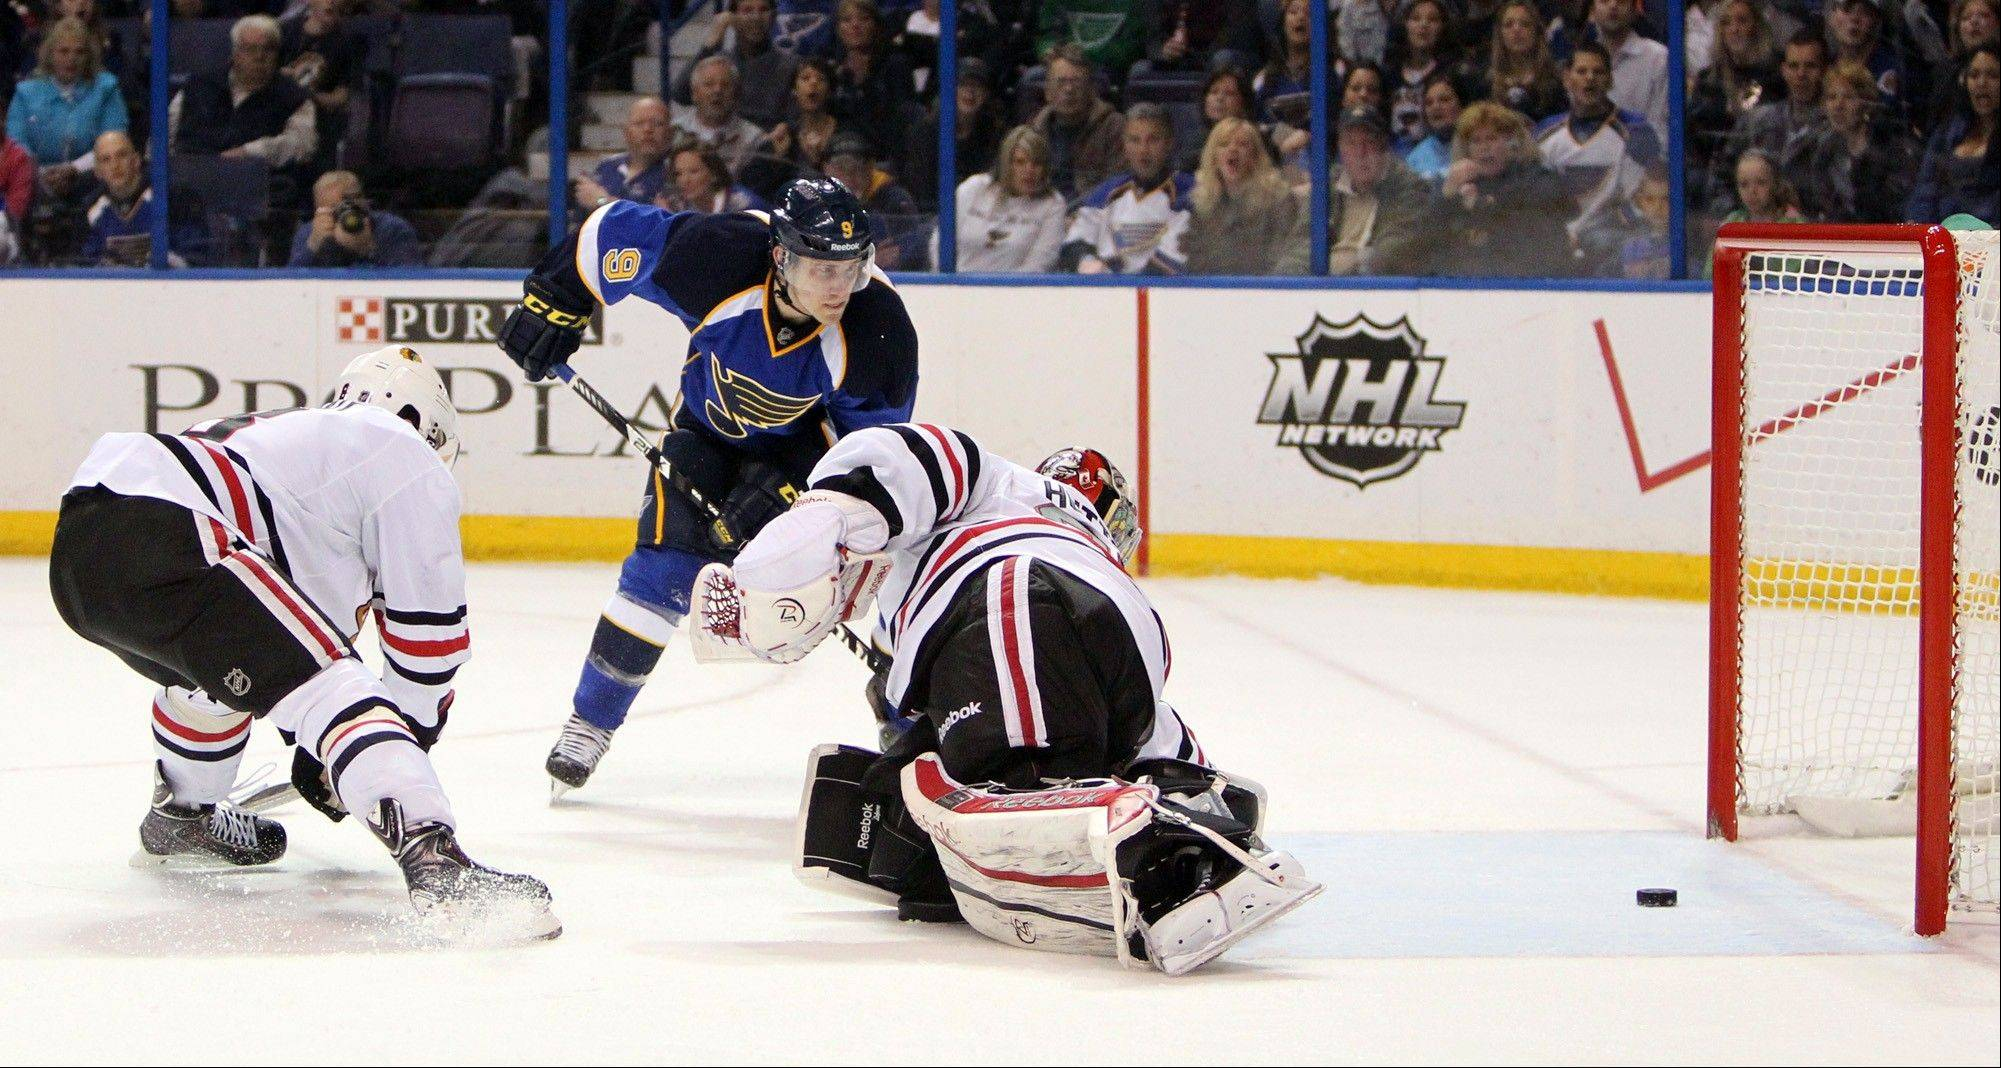 St. Louis Blues forward Jaden Schwartz scores past Chicago Blackhawks goaltender Carter Hutton in the first period of an NHL hockey game on Saturday, April 27, 2013, at the Scottrade Center in St. Louis.